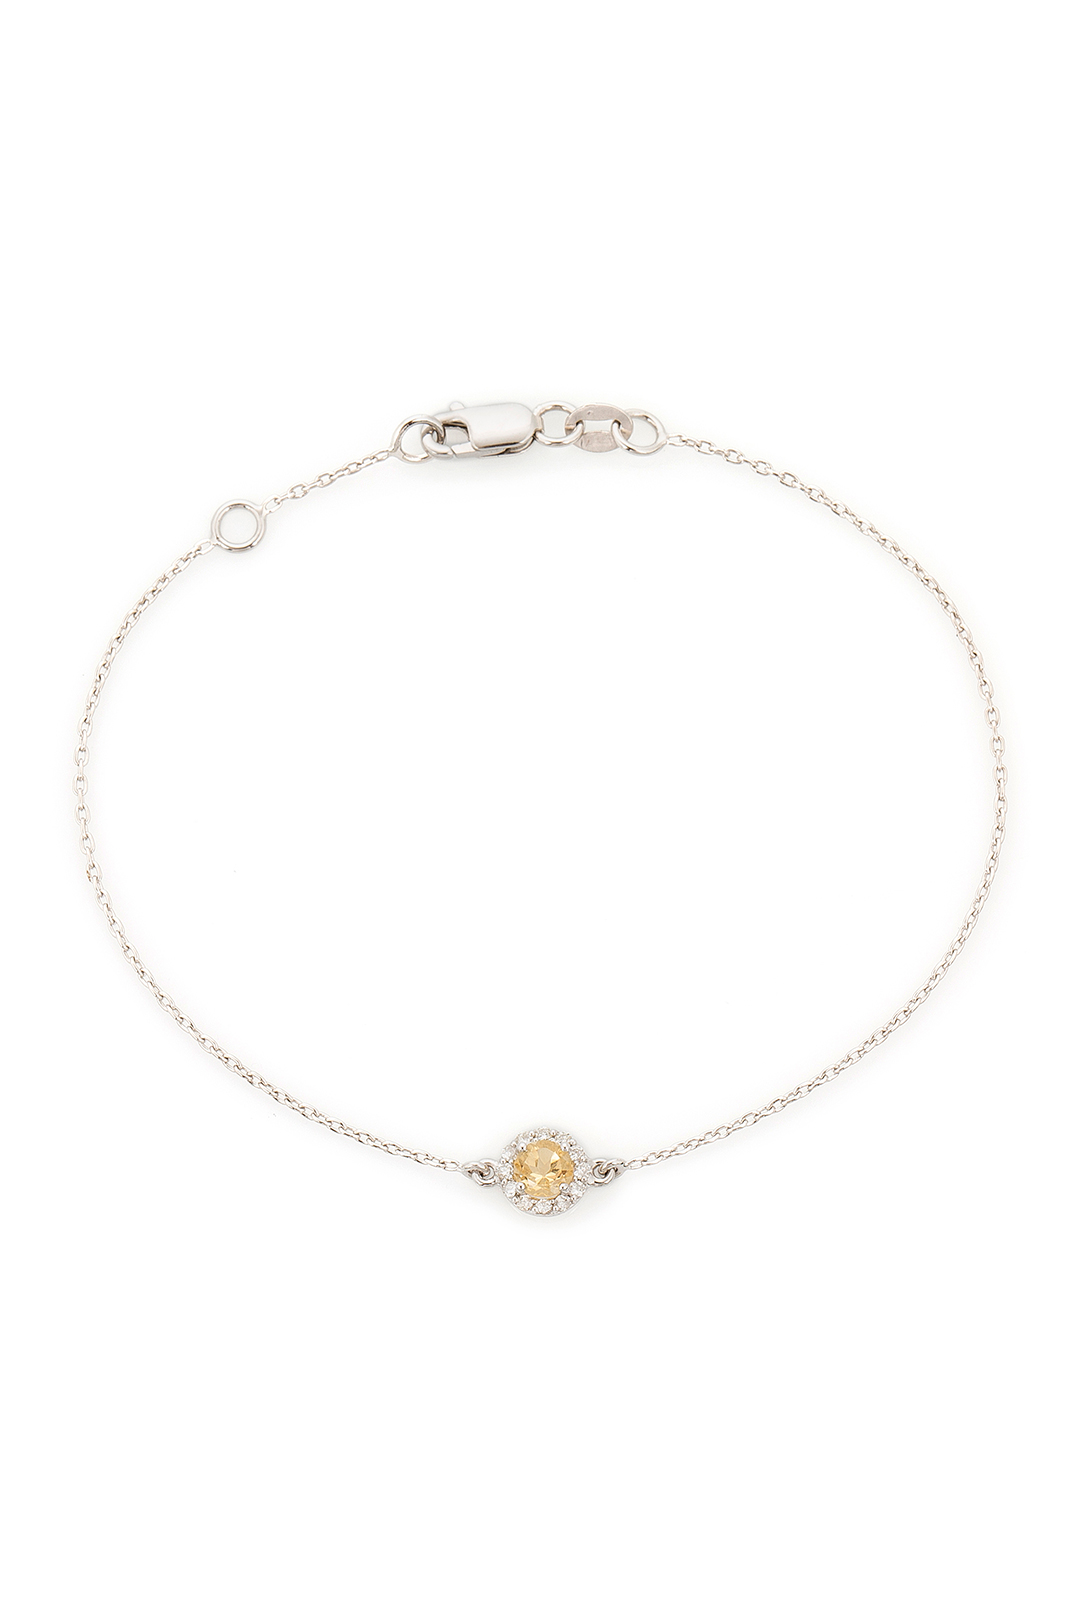 ROUND CITRIN AND DIAMOND BRACELET